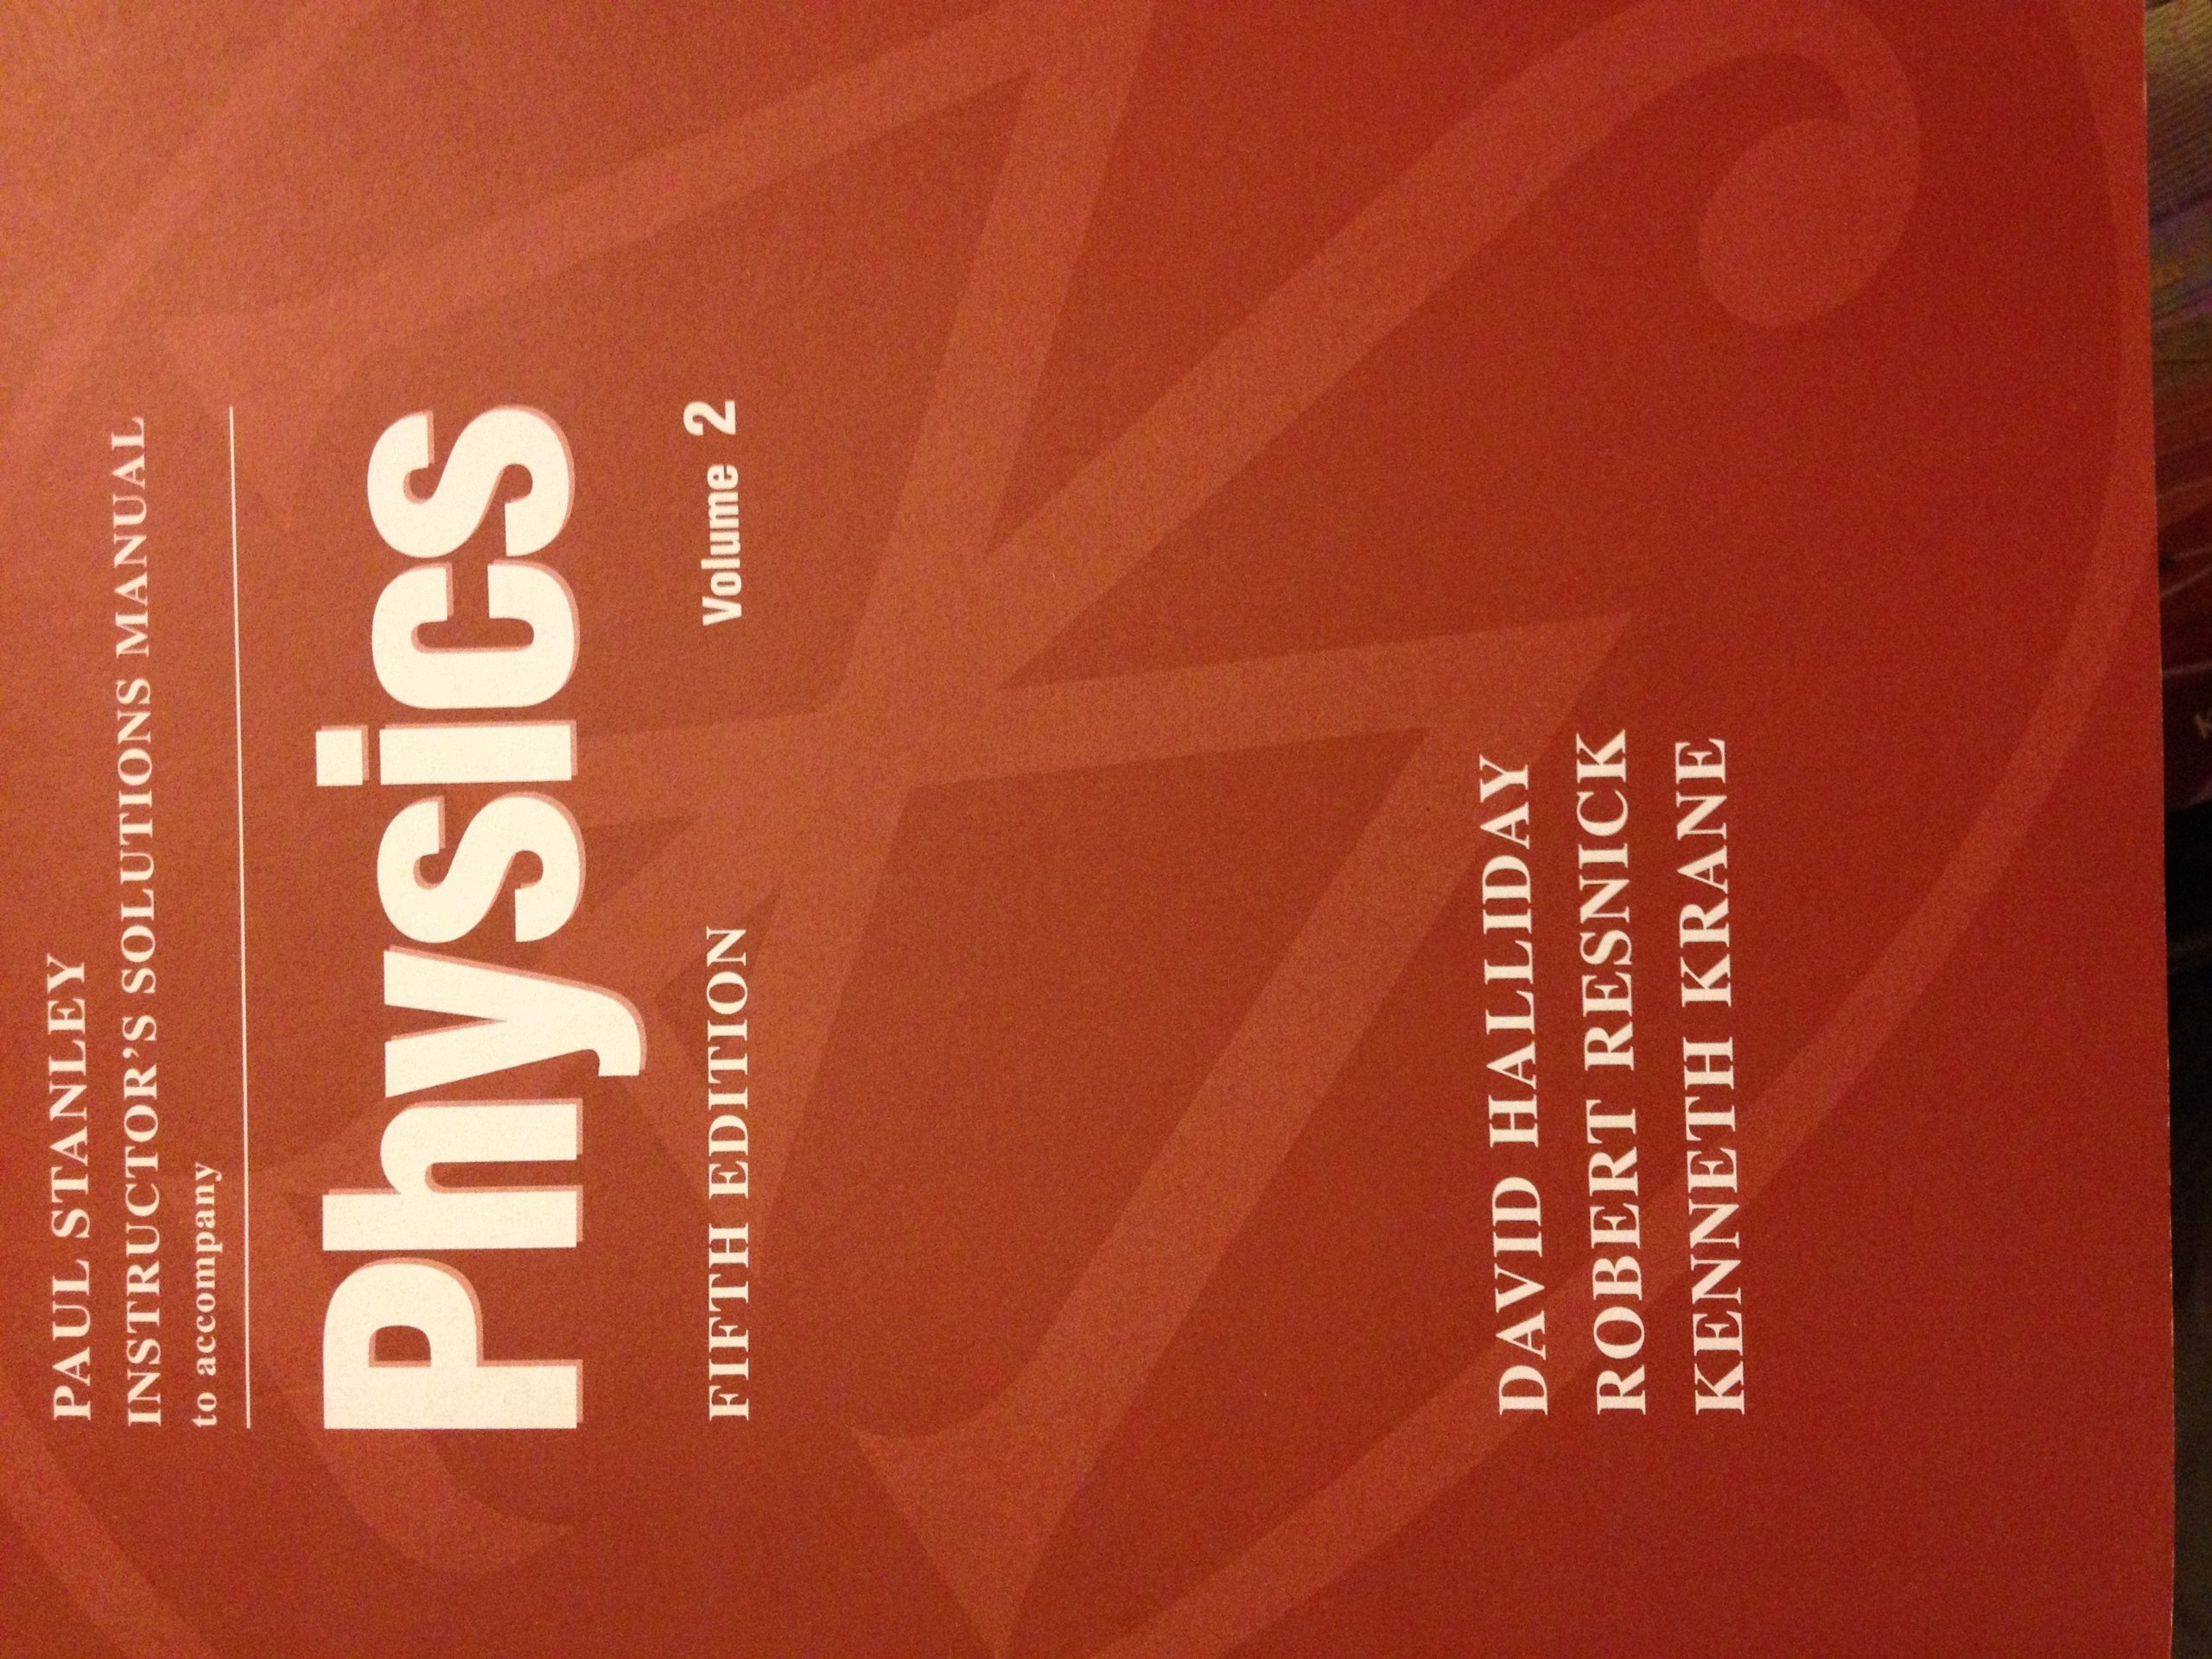 Students Solutions Manual Volume Two to Accompany Physics 5e by Halliday,  Resnick, Krane: 9780471208075: Amazon.com: Books